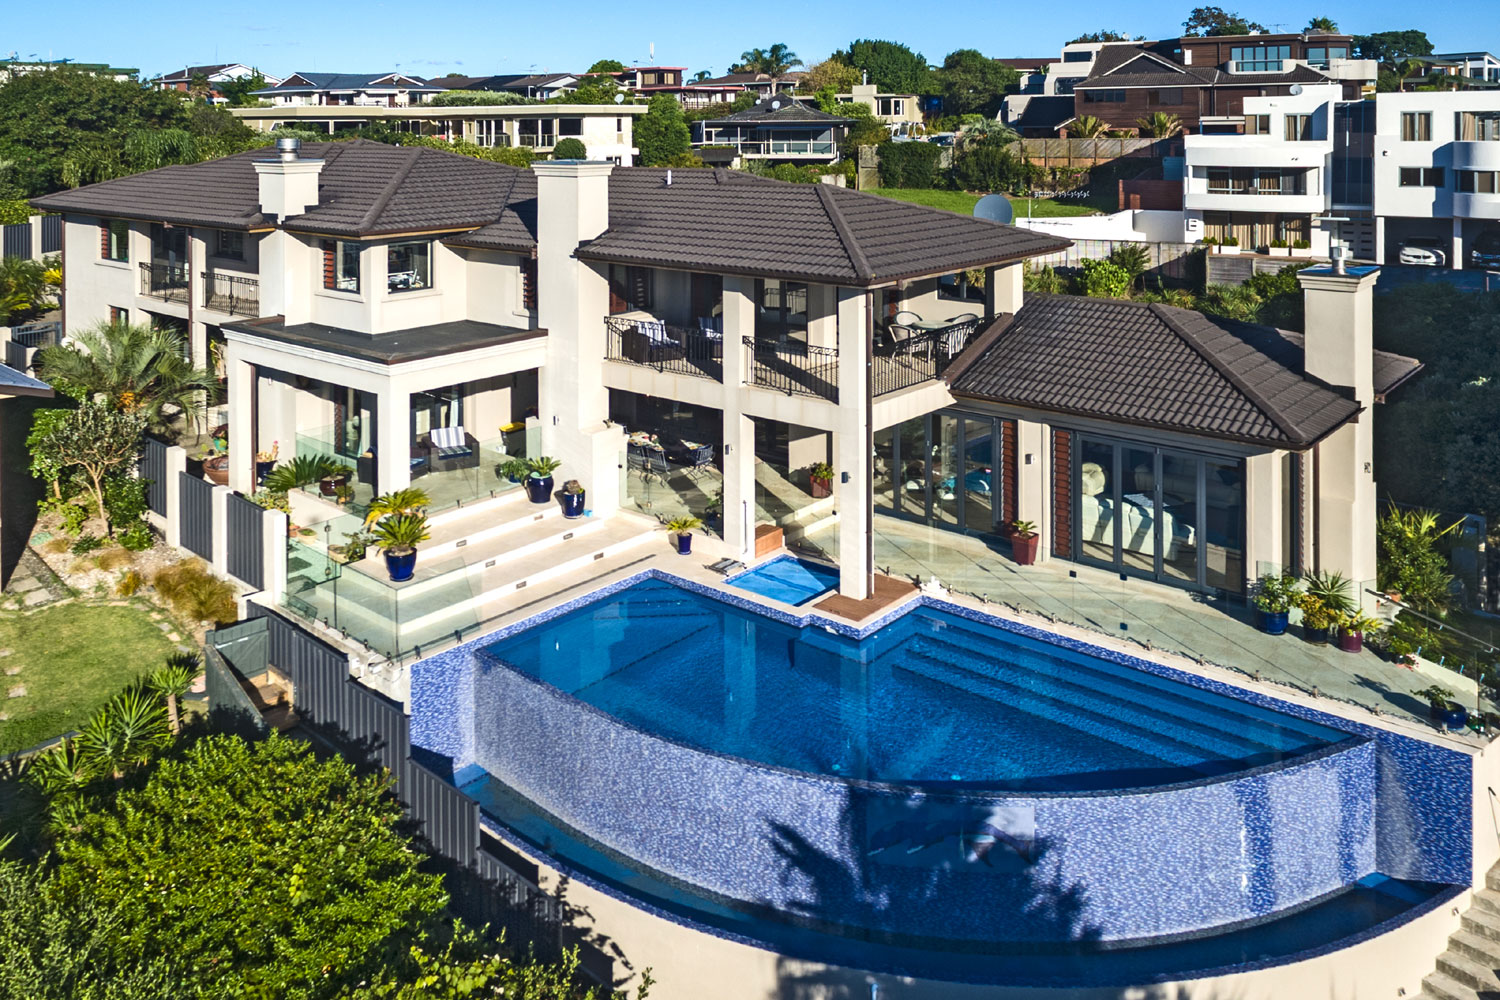 In Auckland, New Zealand, this exceptional Italian-inspired villa commands a hillside location in Bucklands Beach, with sensational views of Rangitoto Island and the channel.